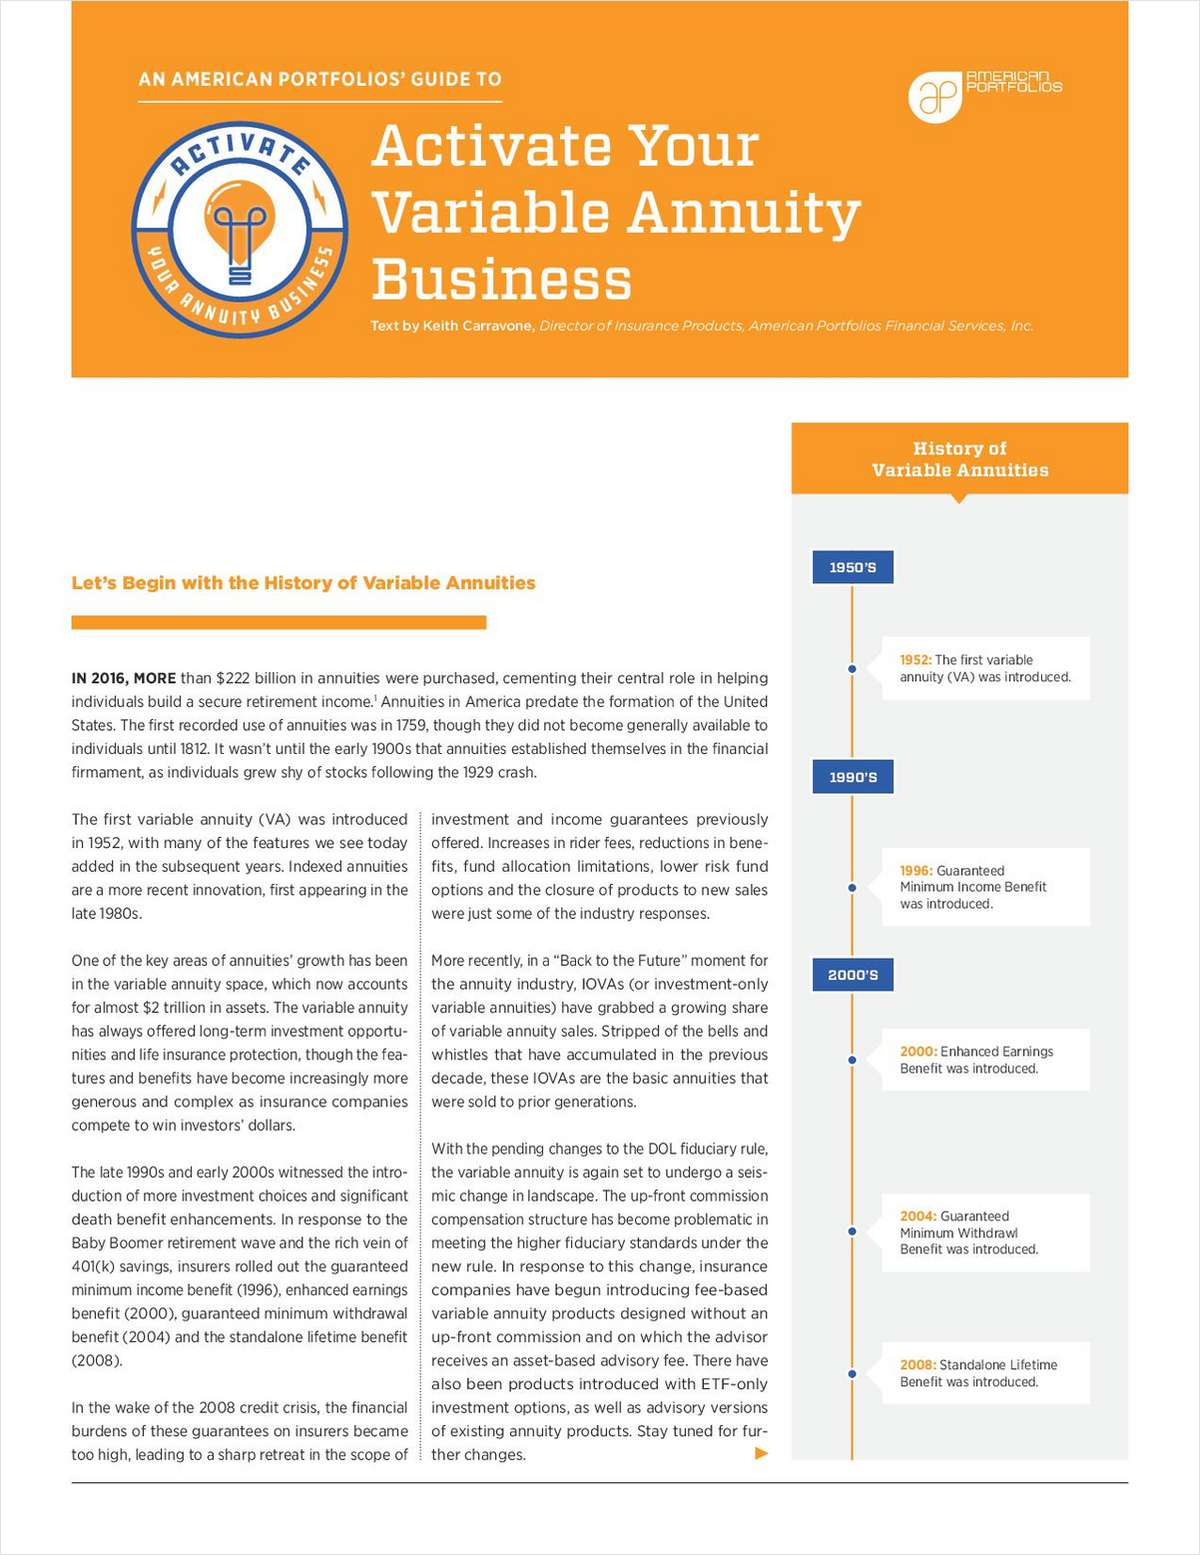 Activate your variable annuity business free american portfolios white paper